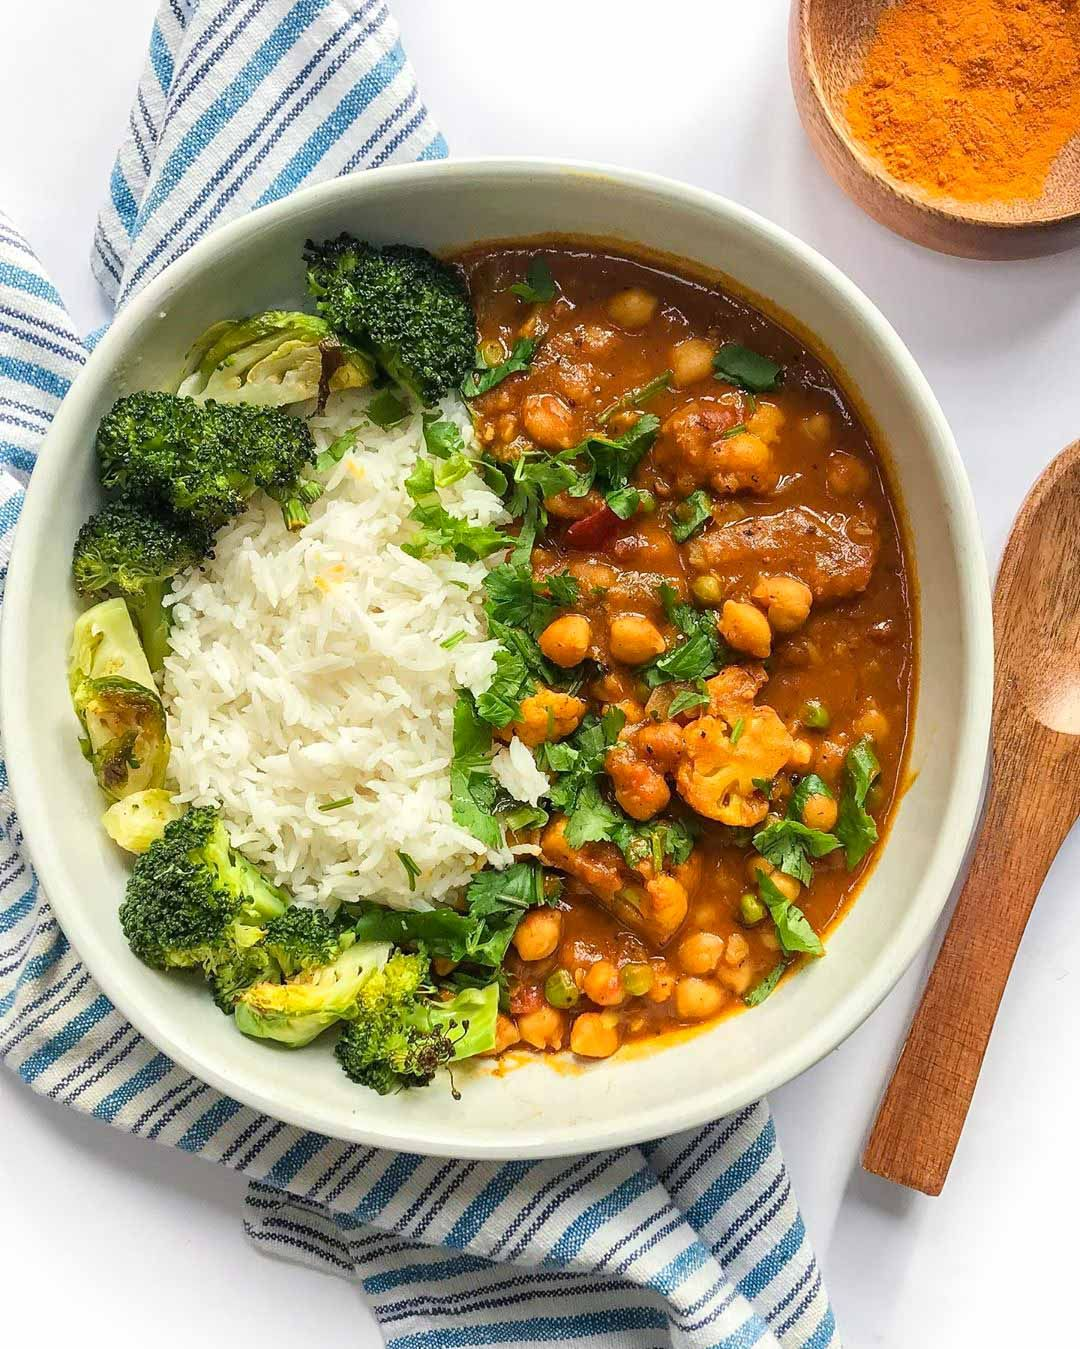 Coconut Curry Chickpeas With Cauliflower The Best Vegan Food Recipes Good Old Vegan Recipe In 2020 Coconut Curry Vegan Dinner Recipes Vegan Recipes